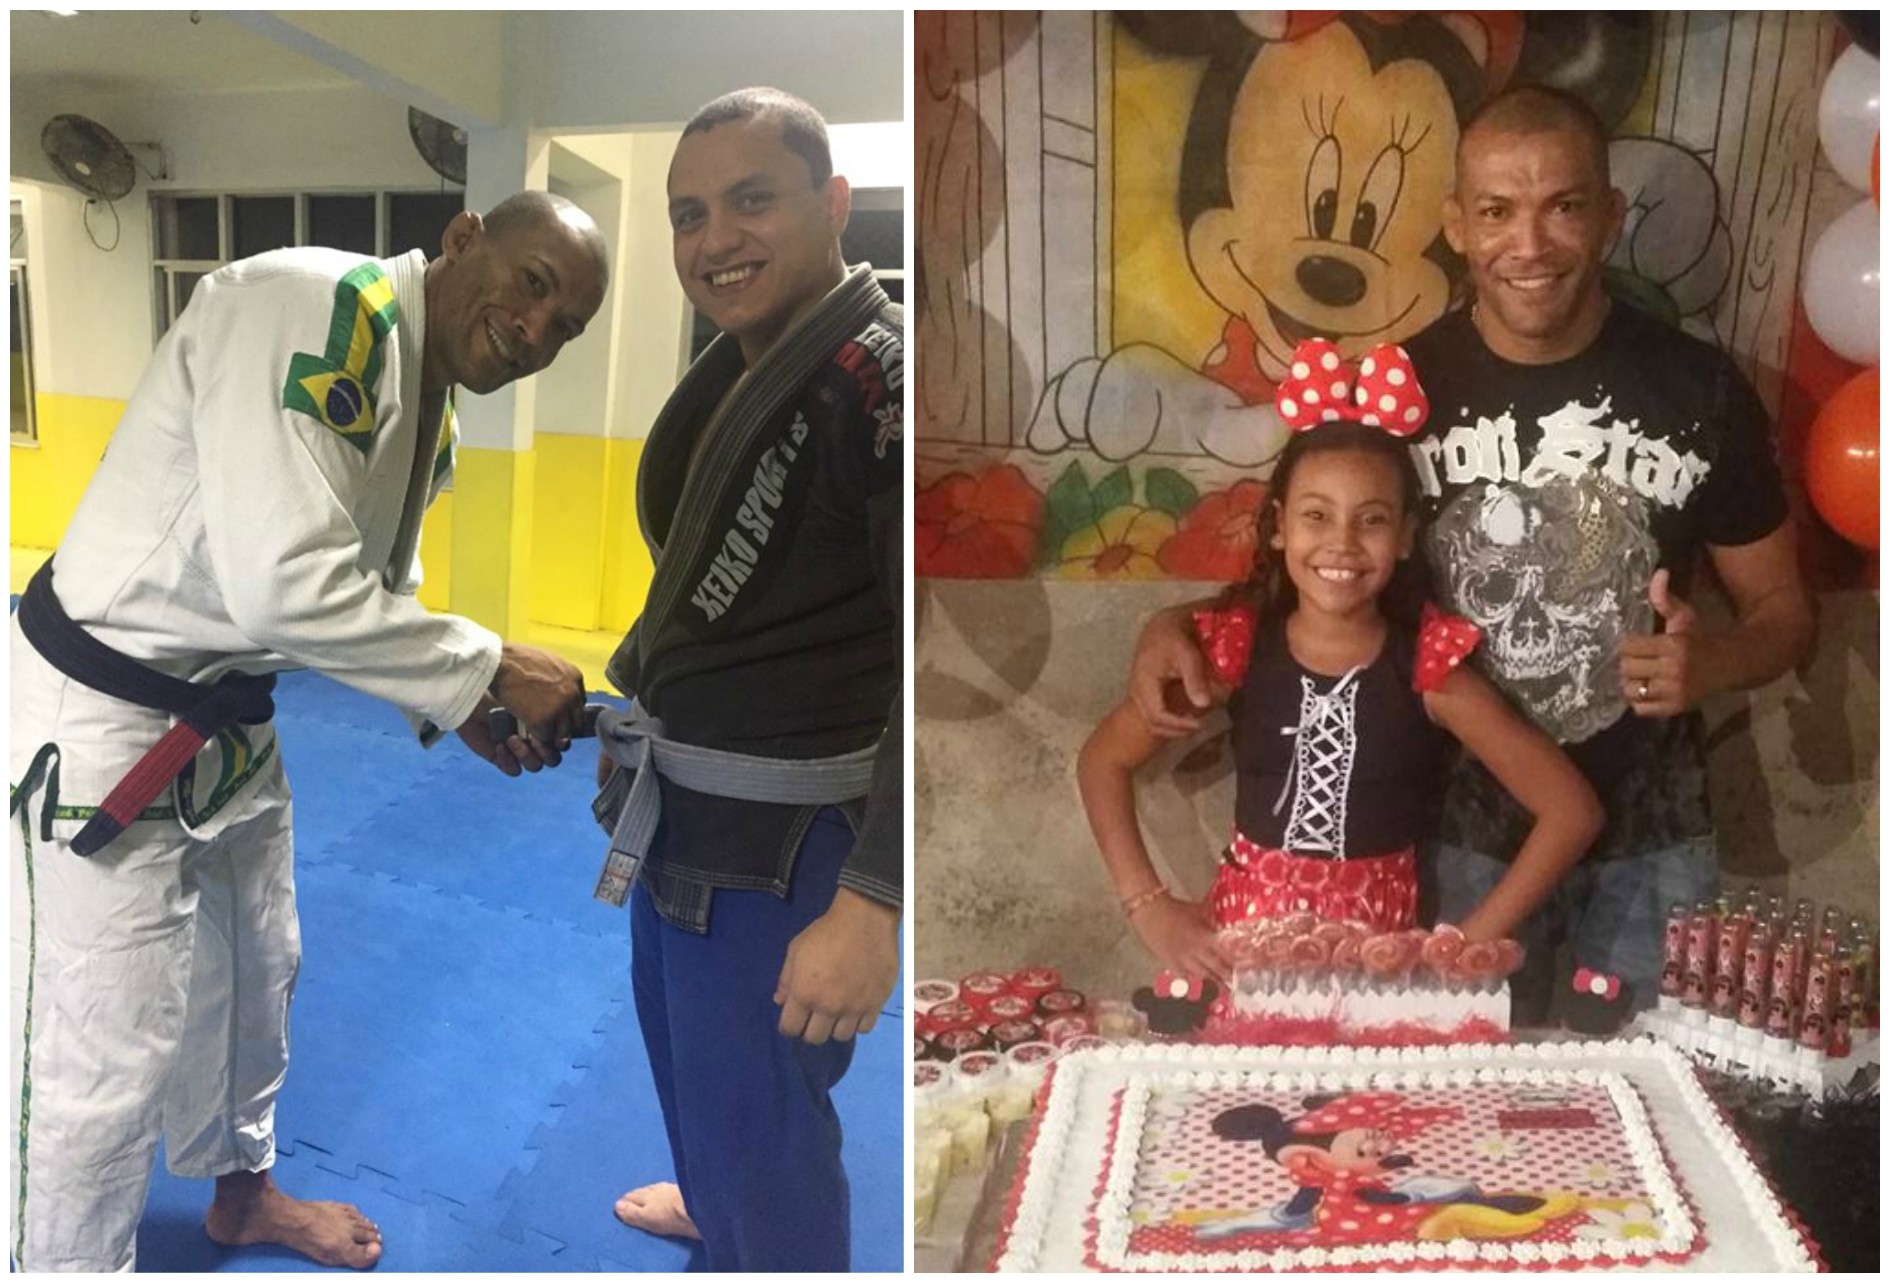 BJJ Black Belt, Father of Three, Shot Dead Trying To Disarm Robber